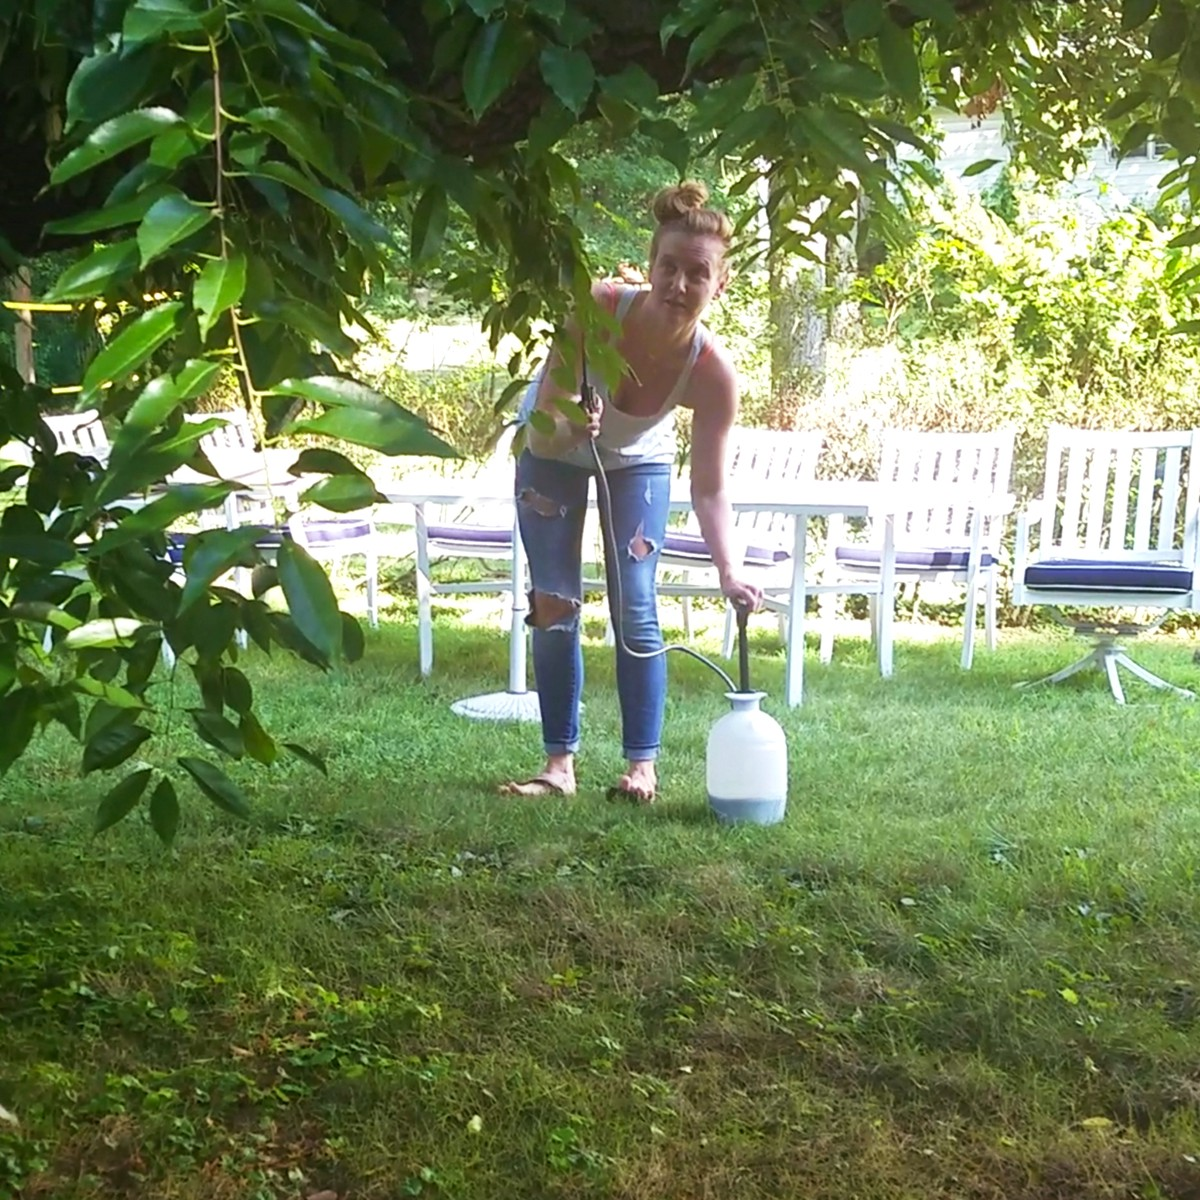 mosquito proof your backyard in time to host your own olympics